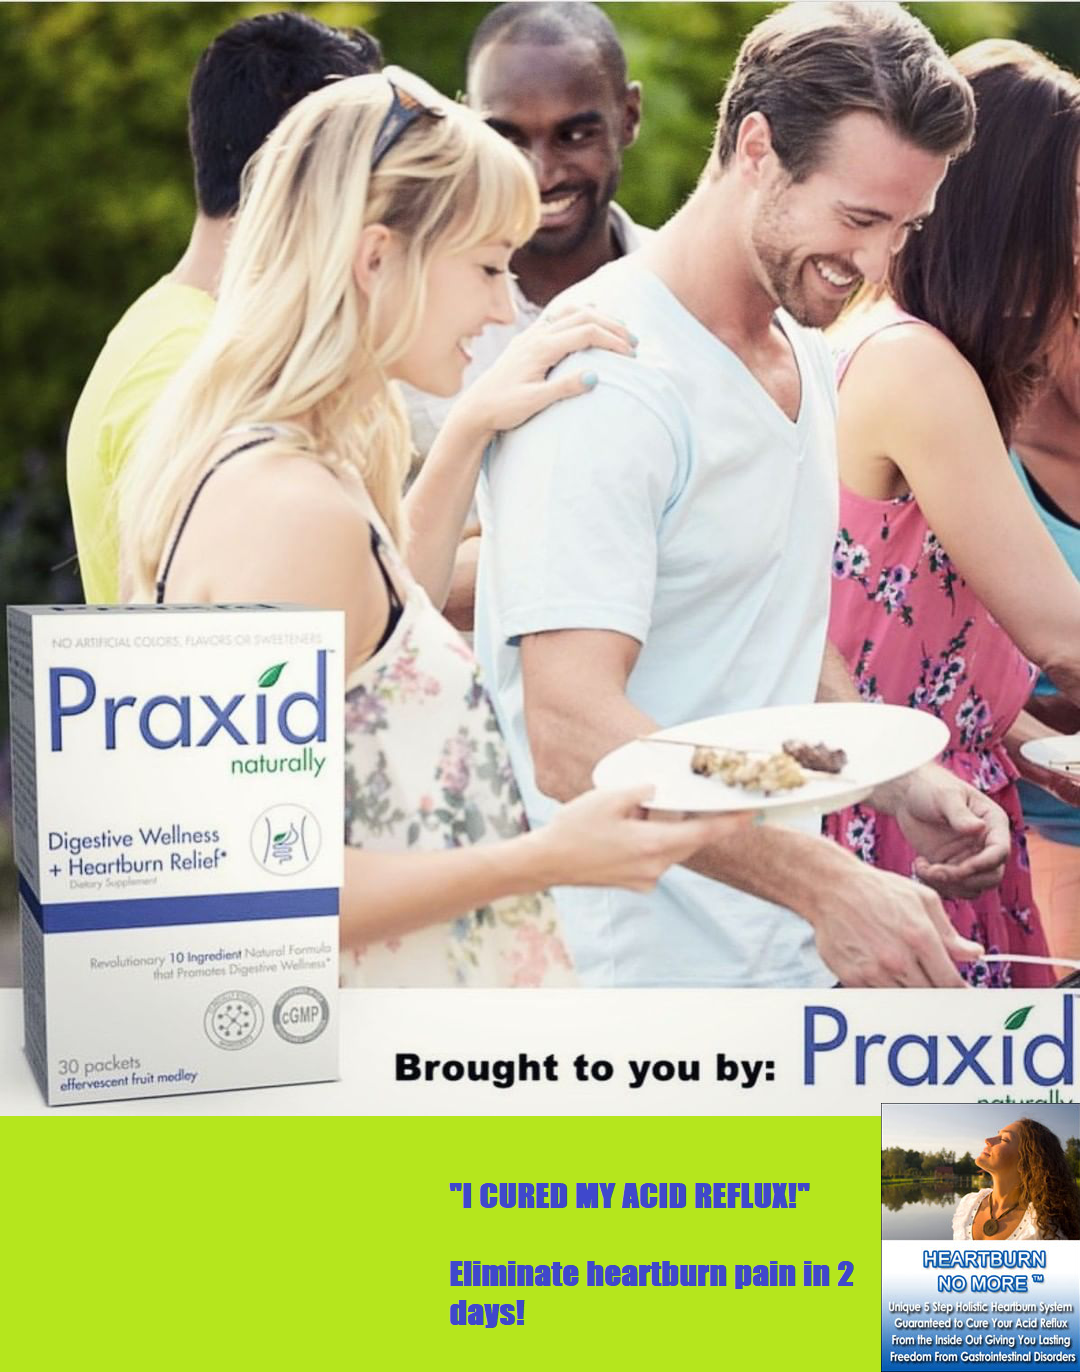 Good news... Praxid is the leading patented natural